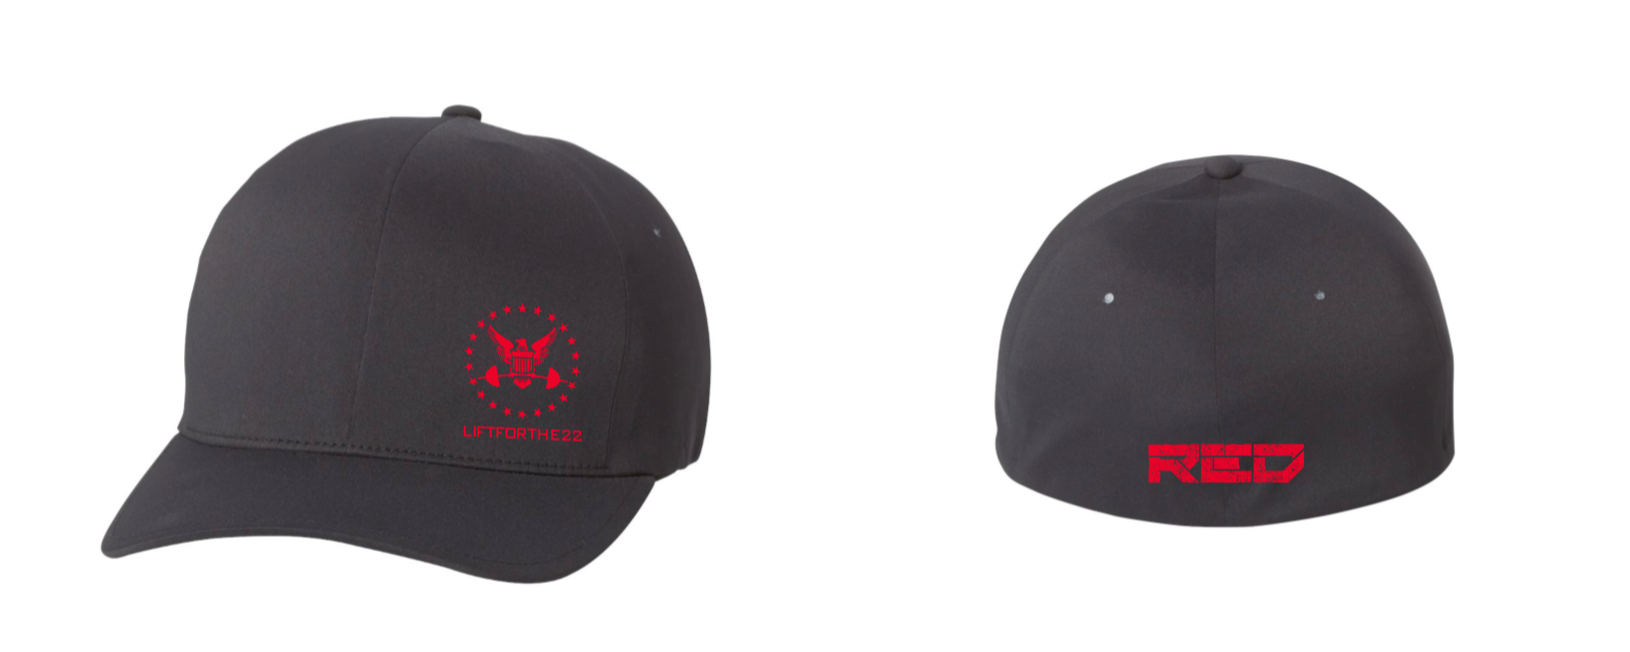 RED Pro Edition DOD Hat in black